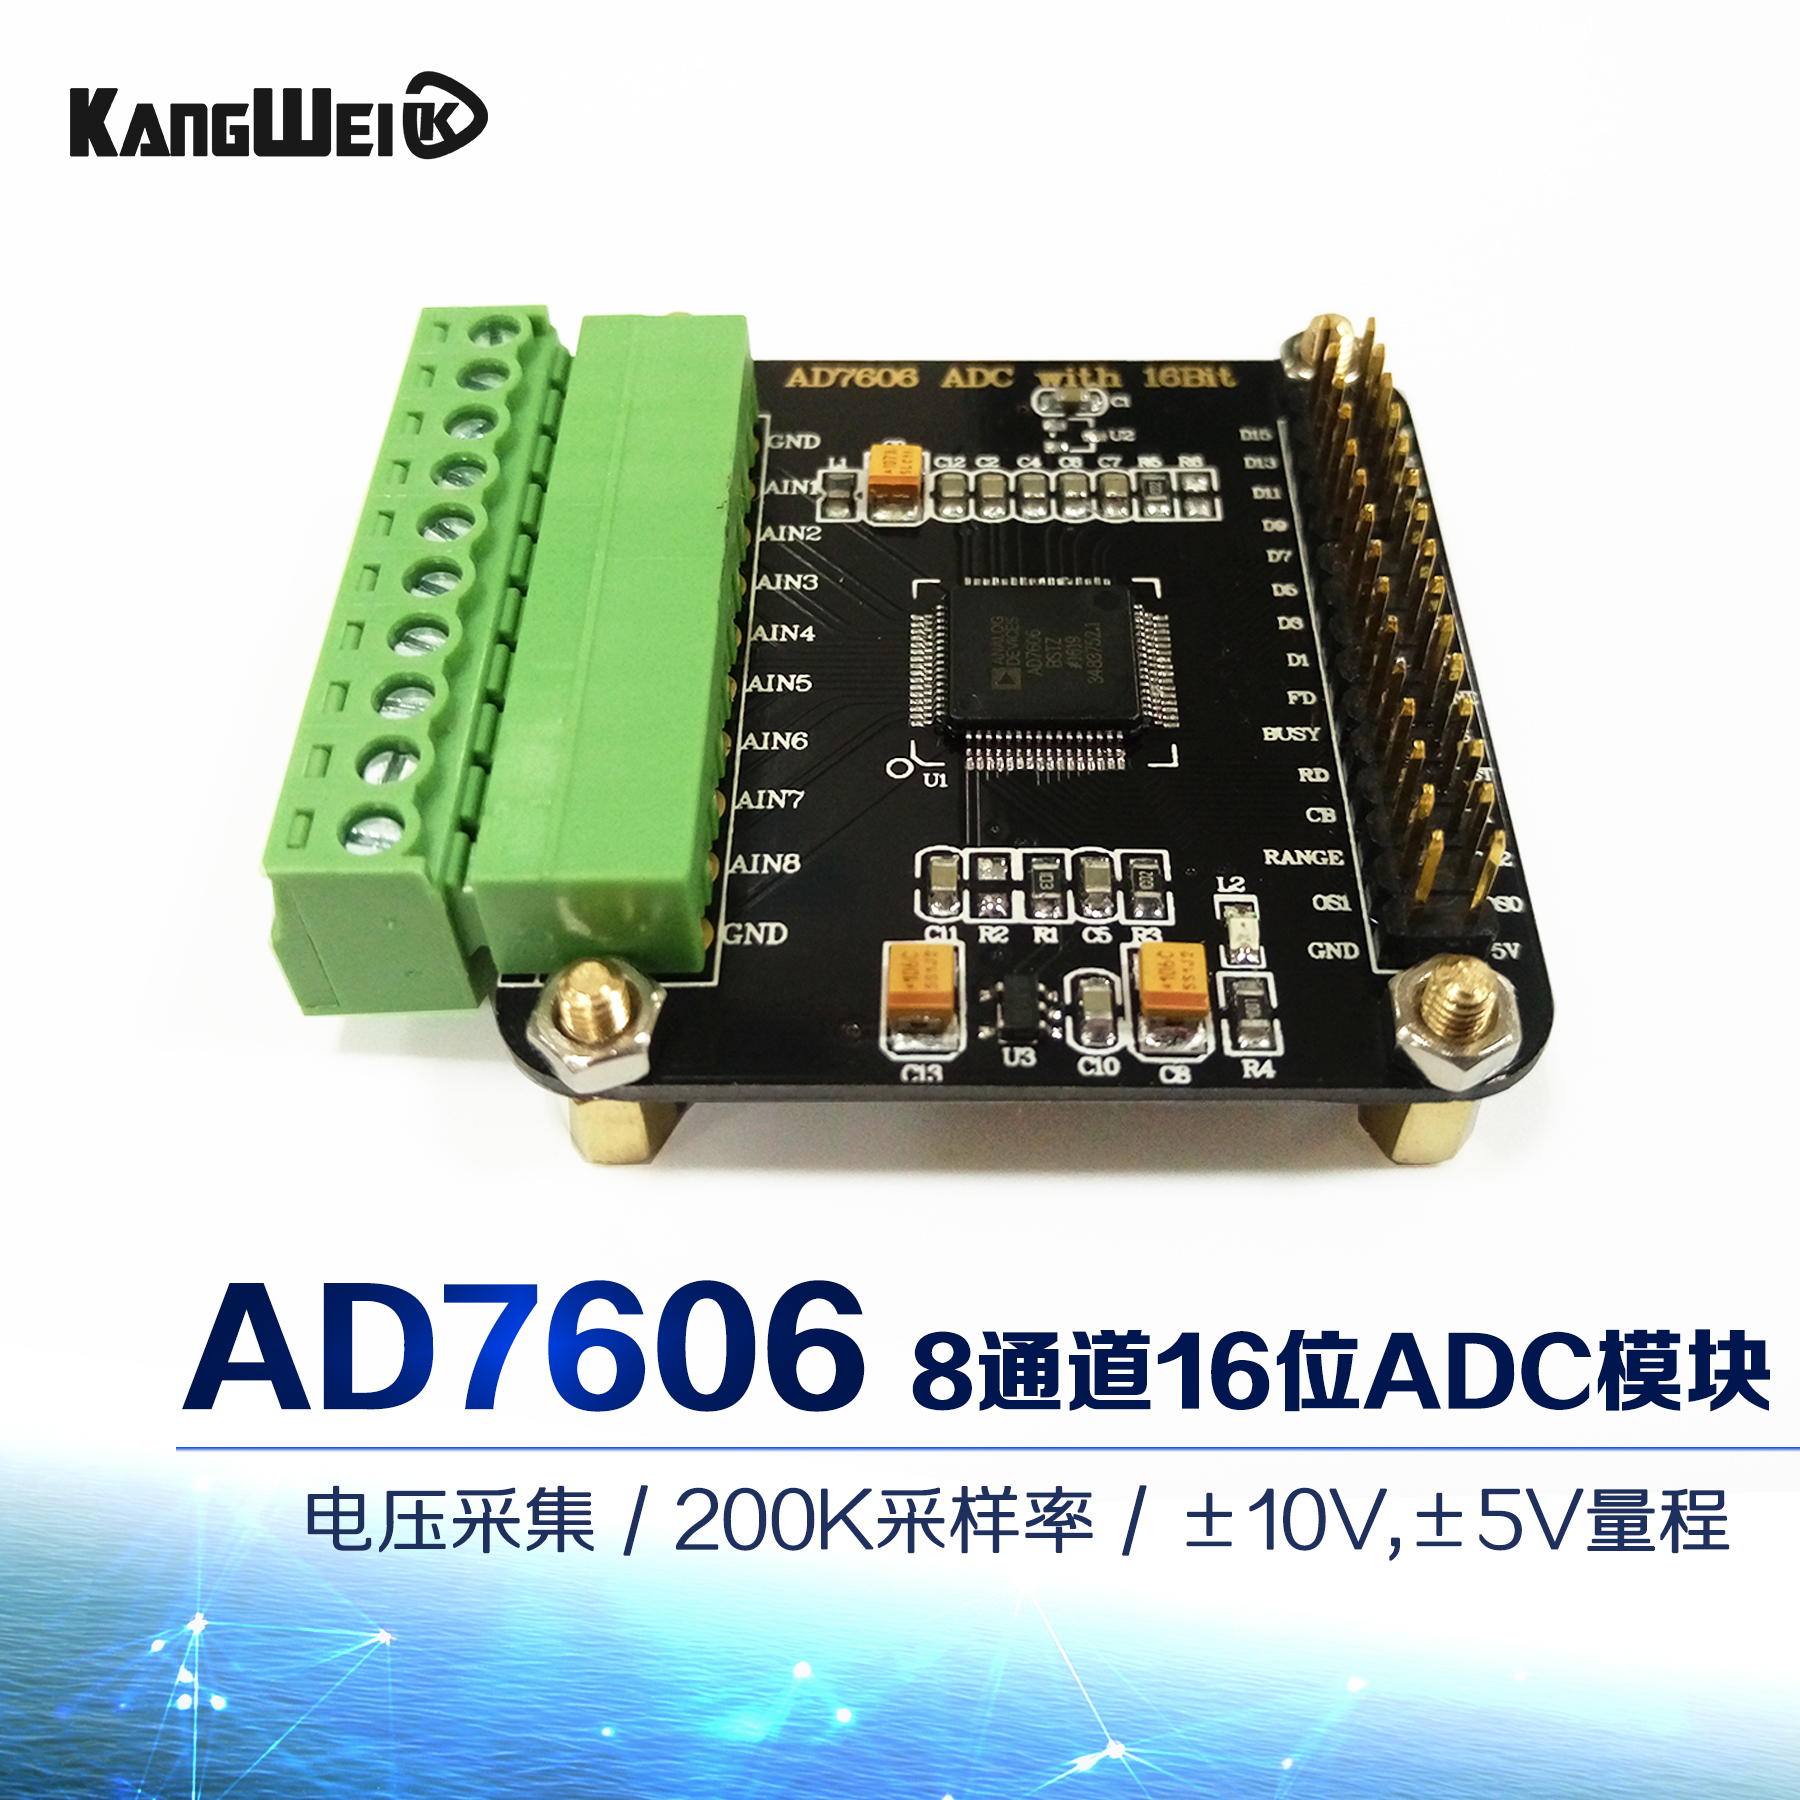 AD7606 multi-channel AD data acquisition module, 16 bit ADC, 8 way synchronous sampling frequency, 200KHz odeon light подвесной светильник odeon light volo 3993 1b